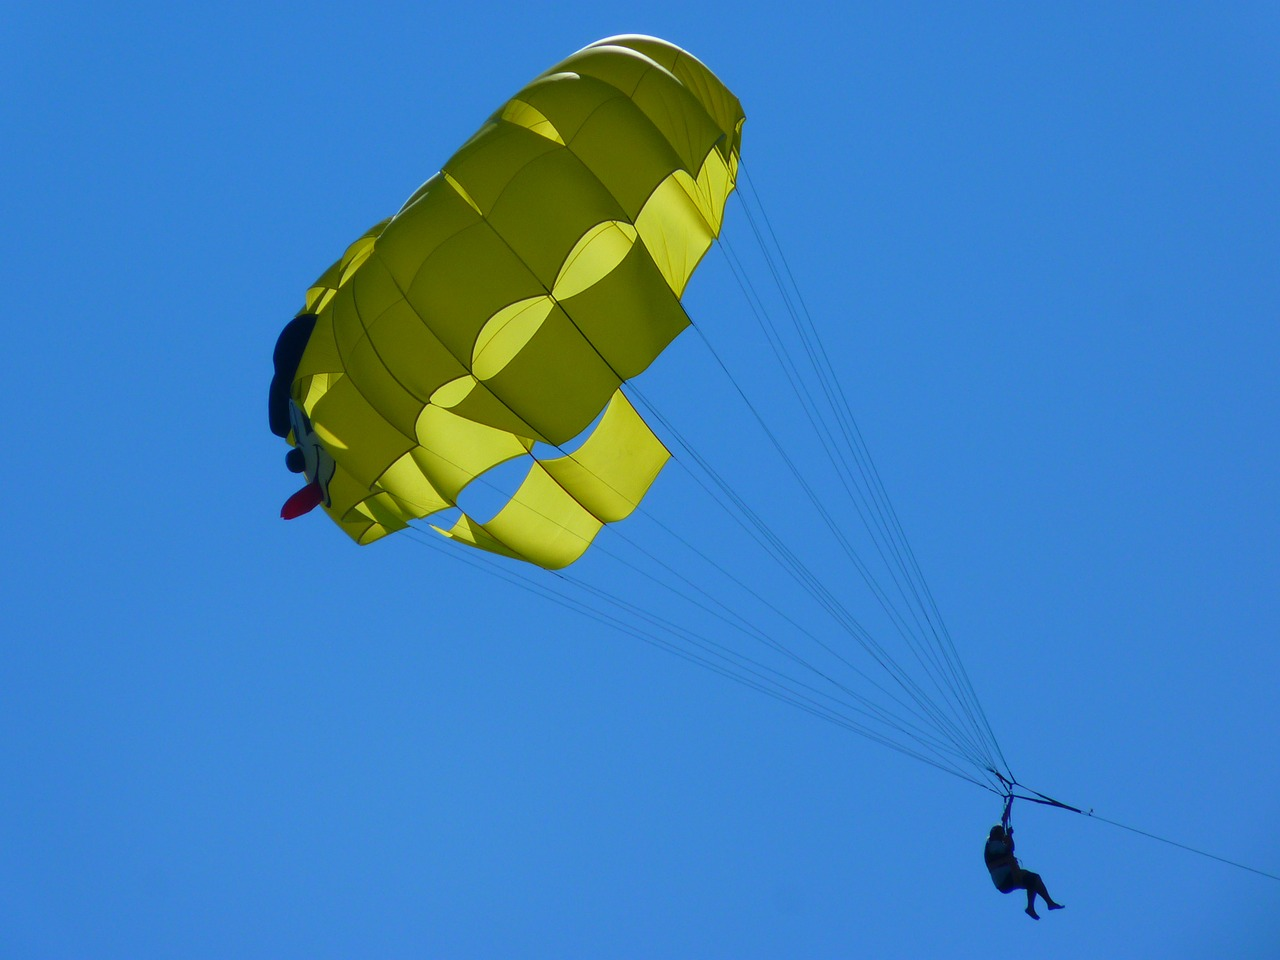 parasailing controllable parachuting top free photo